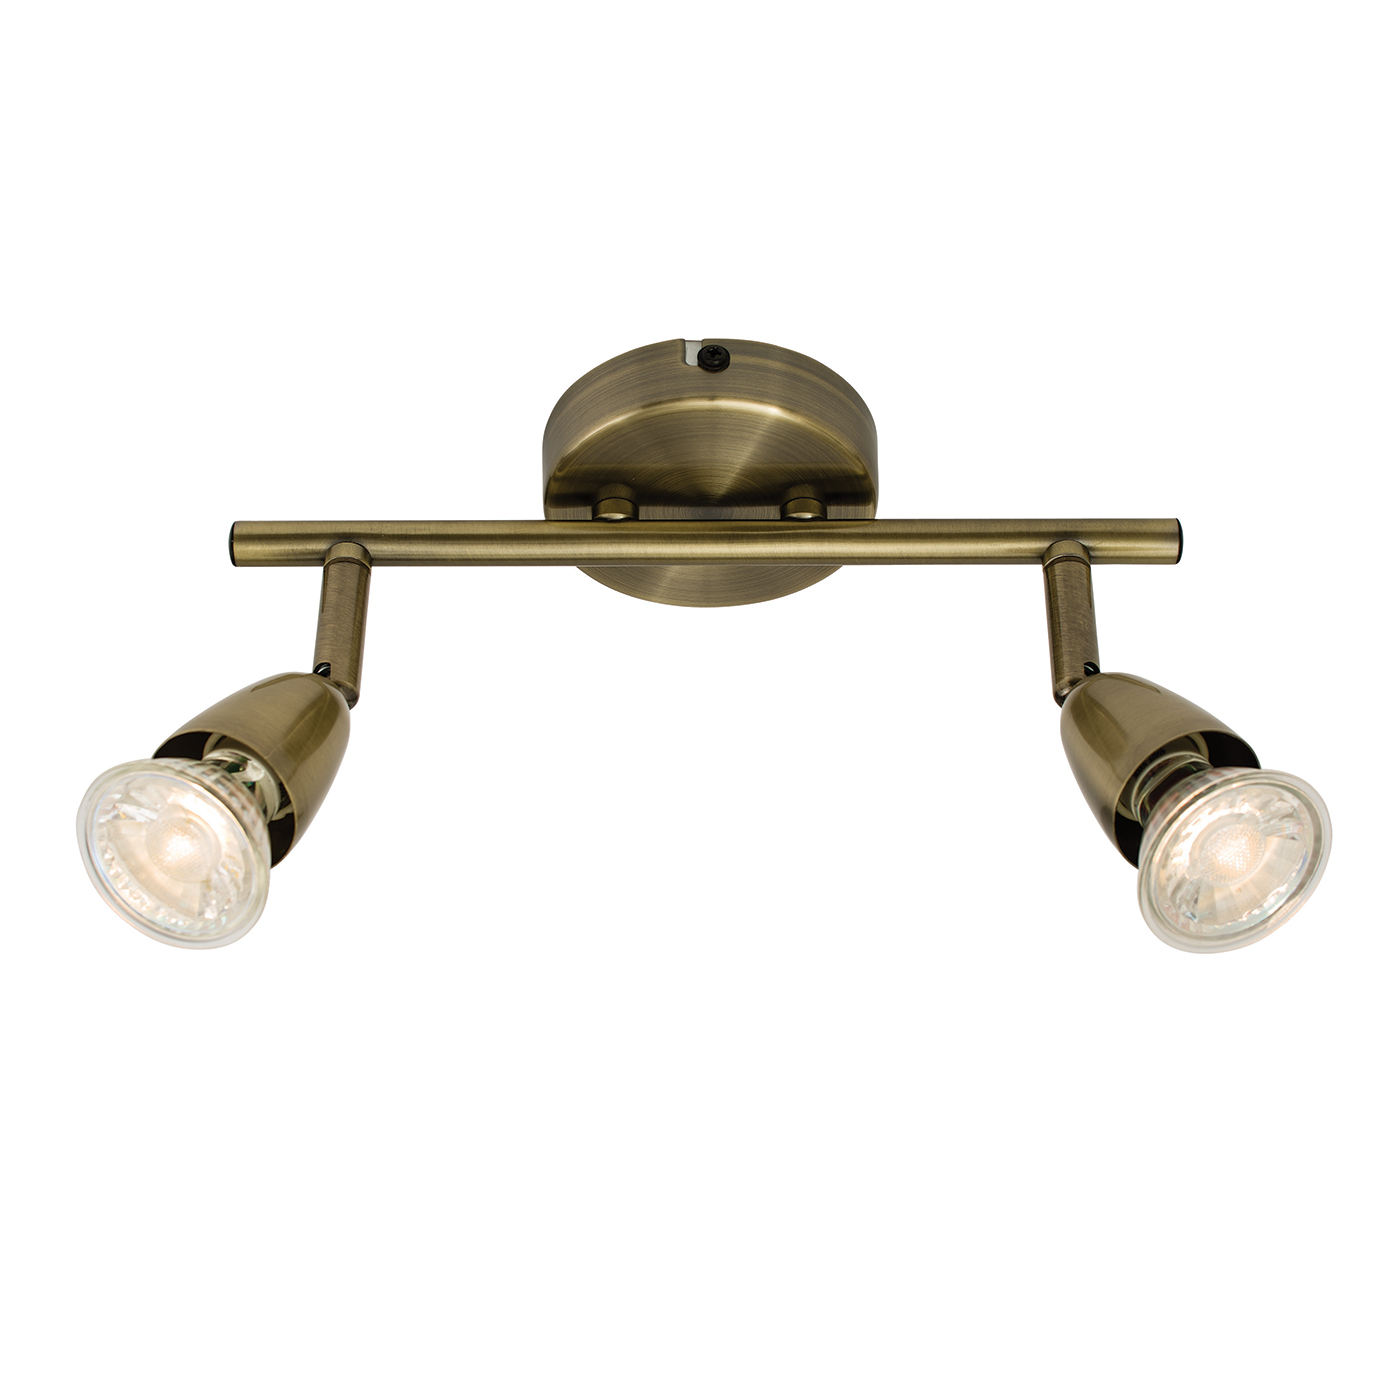 Endon Amalfi ceiling spotlight bar 2x 50W Antique brass effect plate